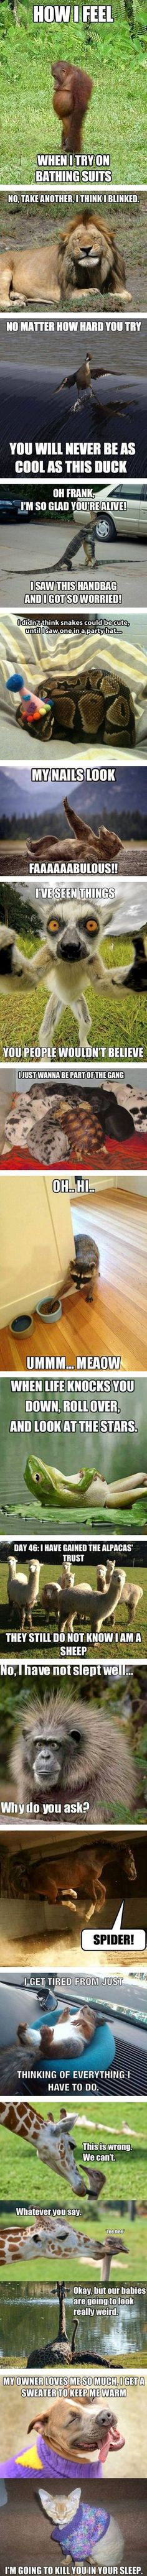 Funny Nailed It. Funny Drunk pictures--Top 35 Funniest Quotes and Funny Photos Humor Animal, Funny Animal Memes, Cute Funny Animals, Animal Quotes, Funny Cute, Funny Memes, Animal Captions, Cat Quotes, Funny Tweets